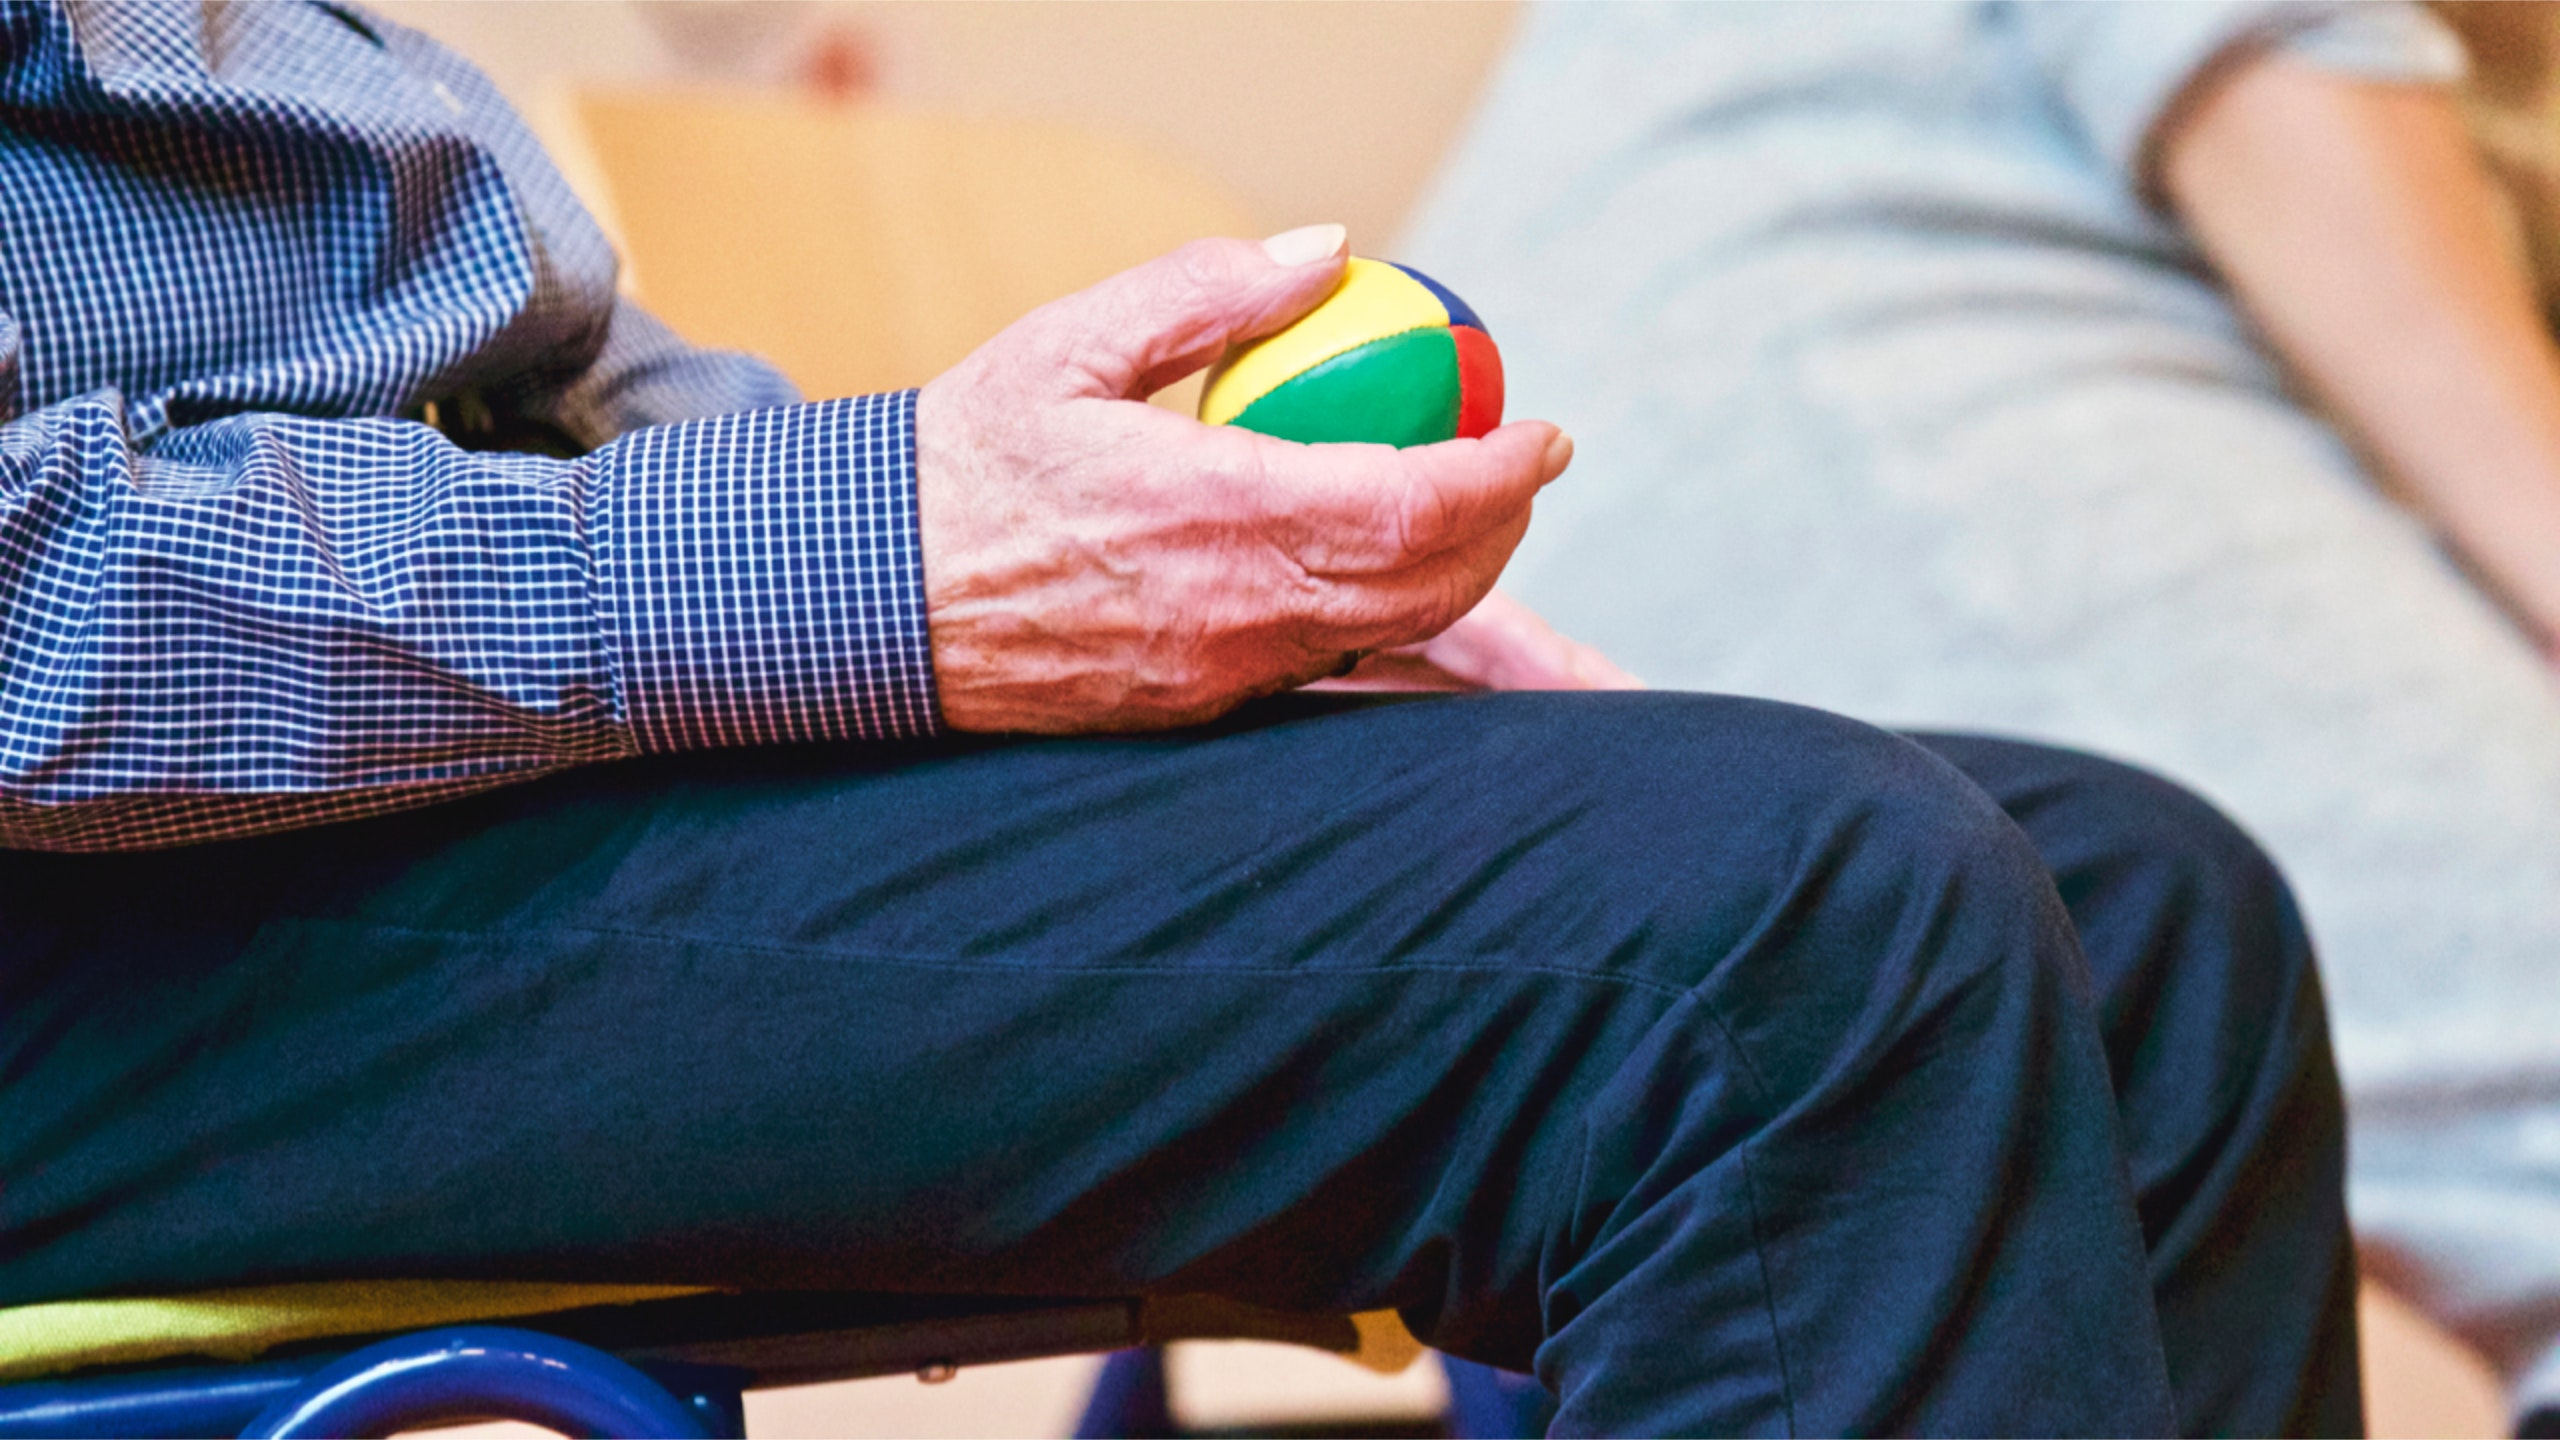 Occupational Therapy Assistant Program in Bergen County, NJ